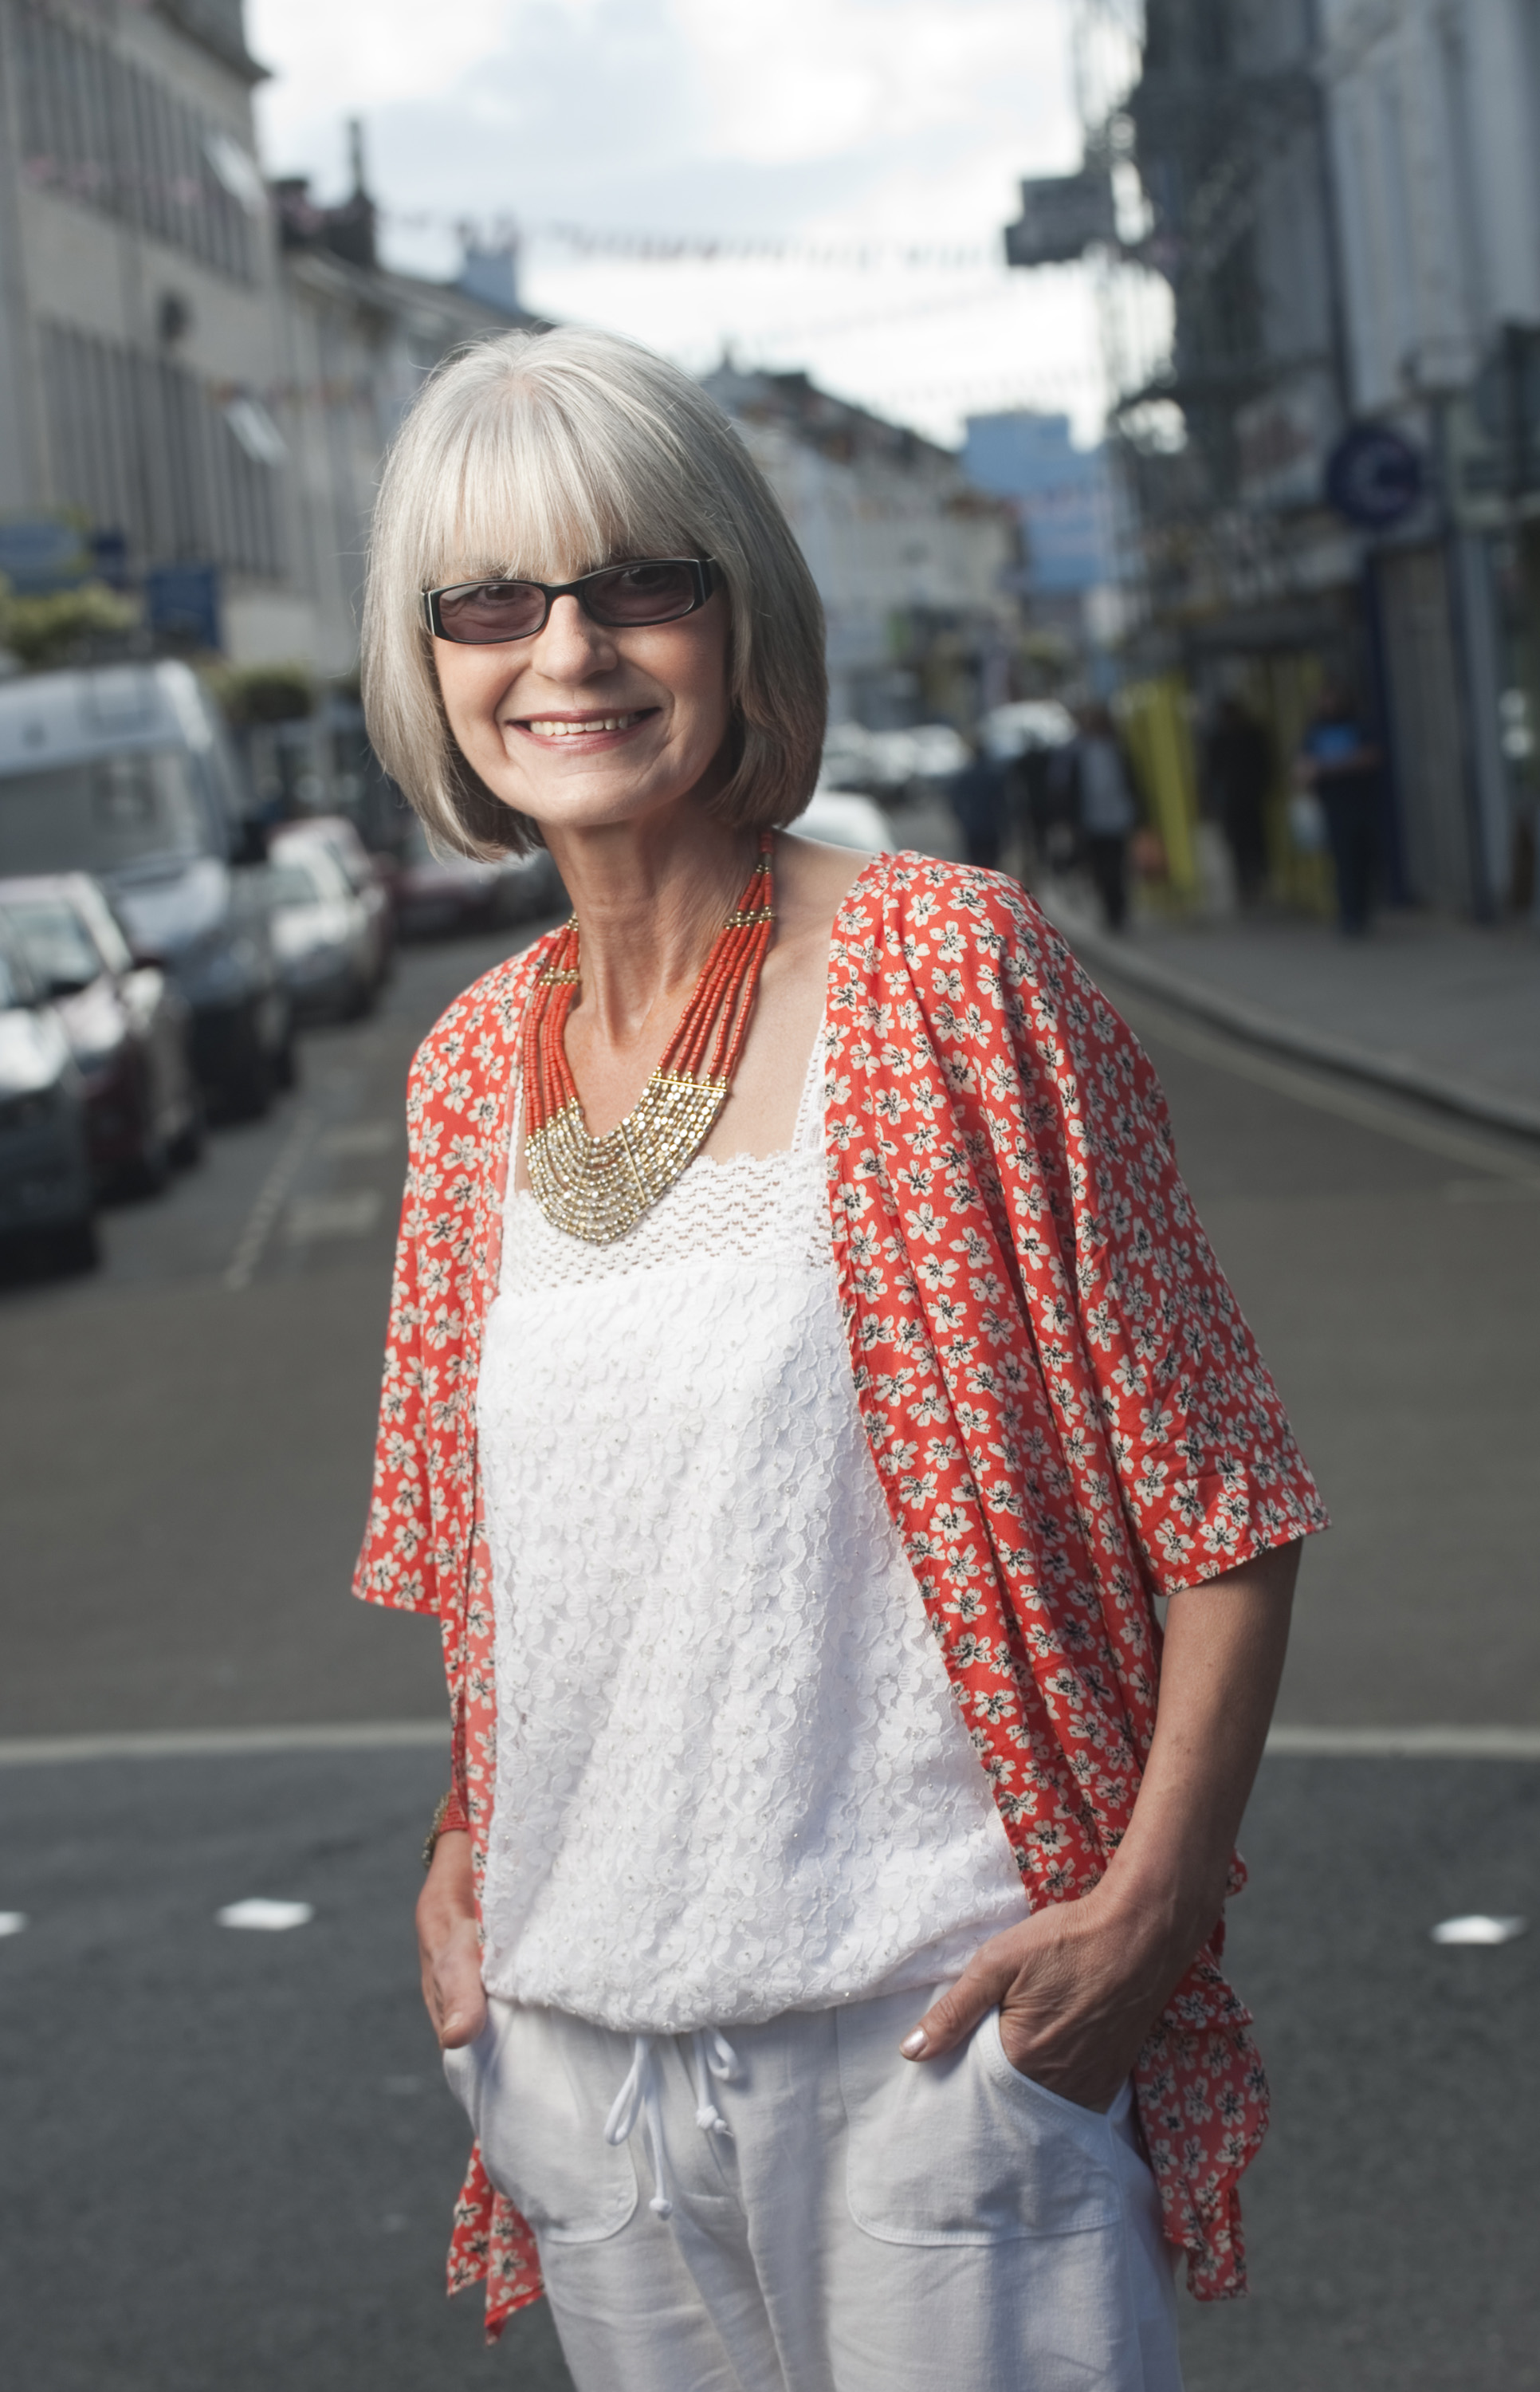 Donna Bearne, South West England regional finalist for Spectacle Wearer of the Year